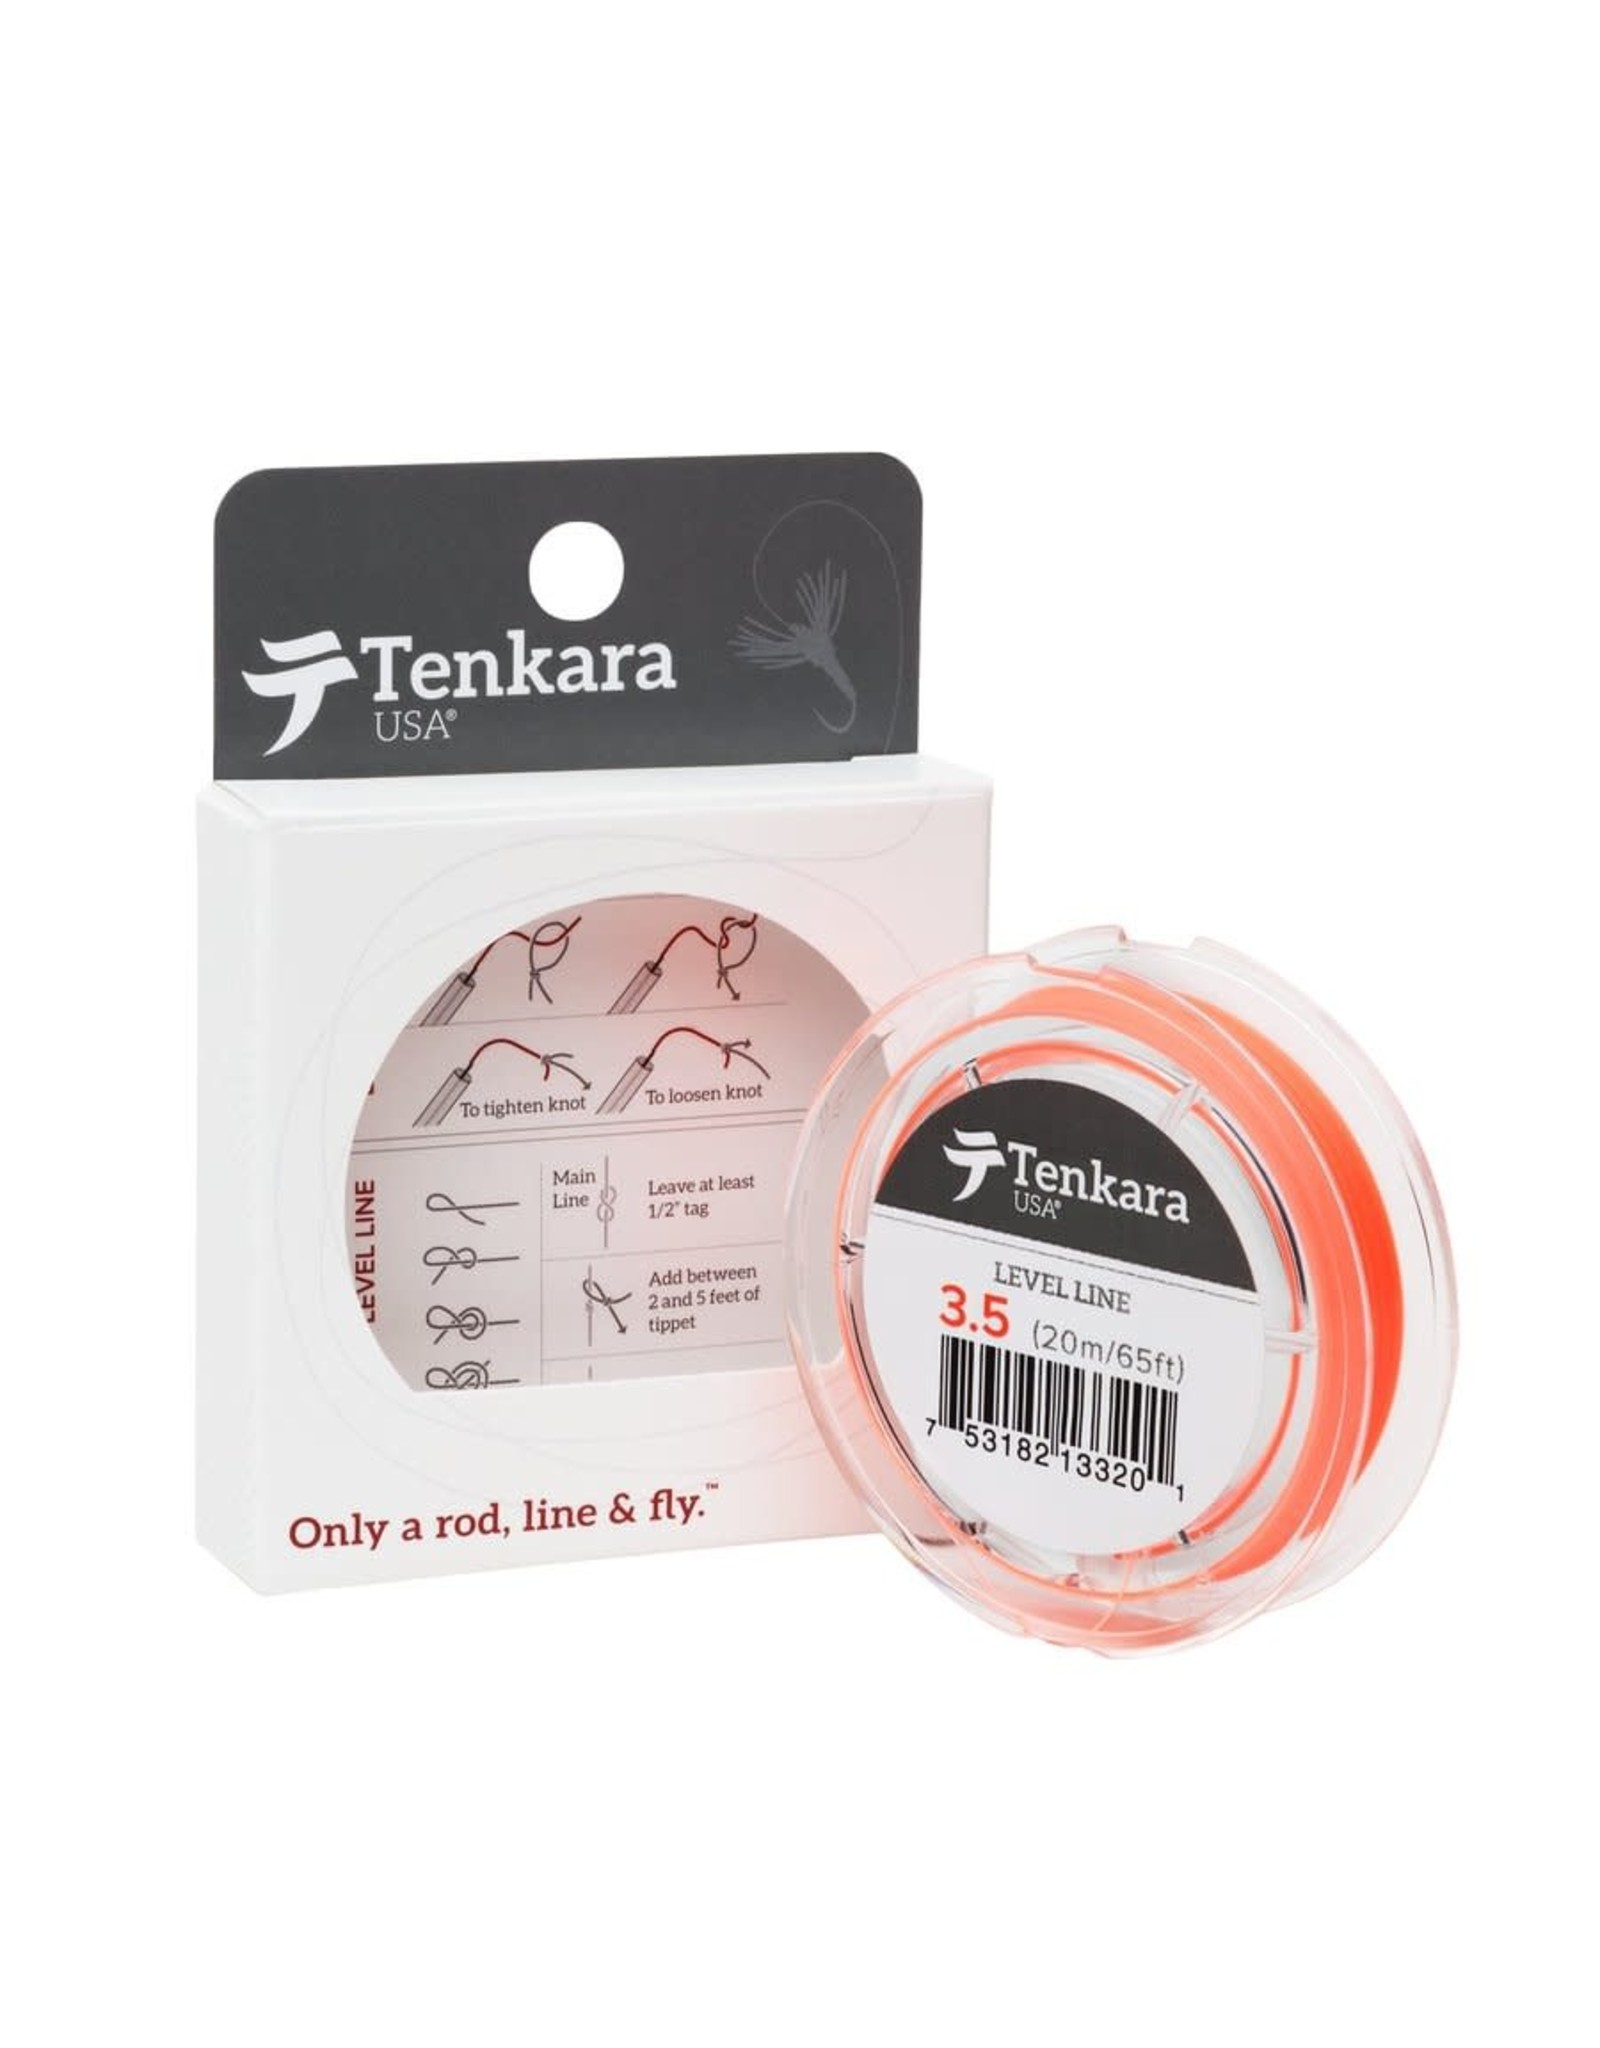 Tenkara USA Tenkara USA Level Line- 2.5